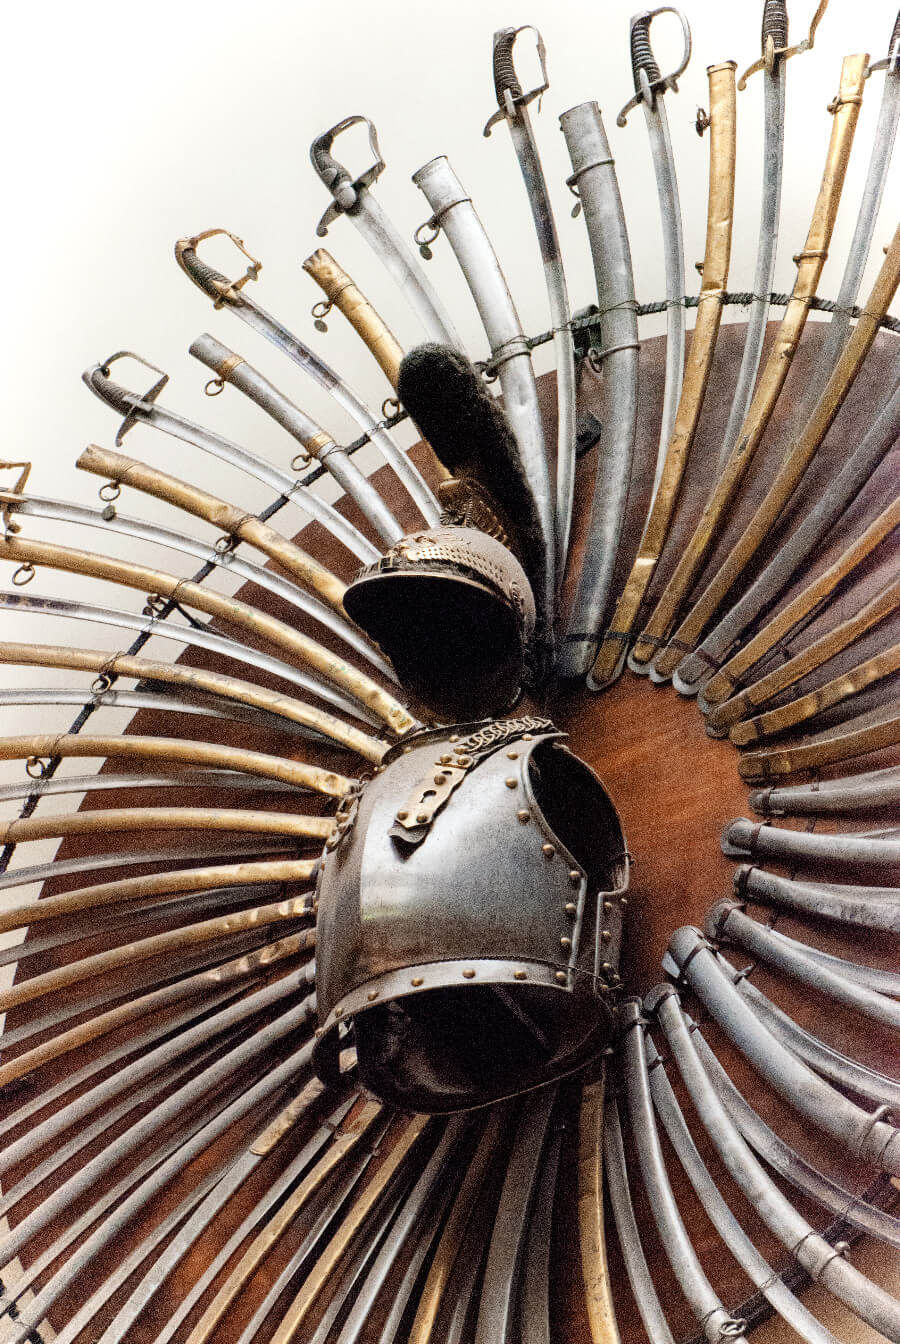 Swords and armour on display at the Royal Military Museum in Brussels, Belgium.